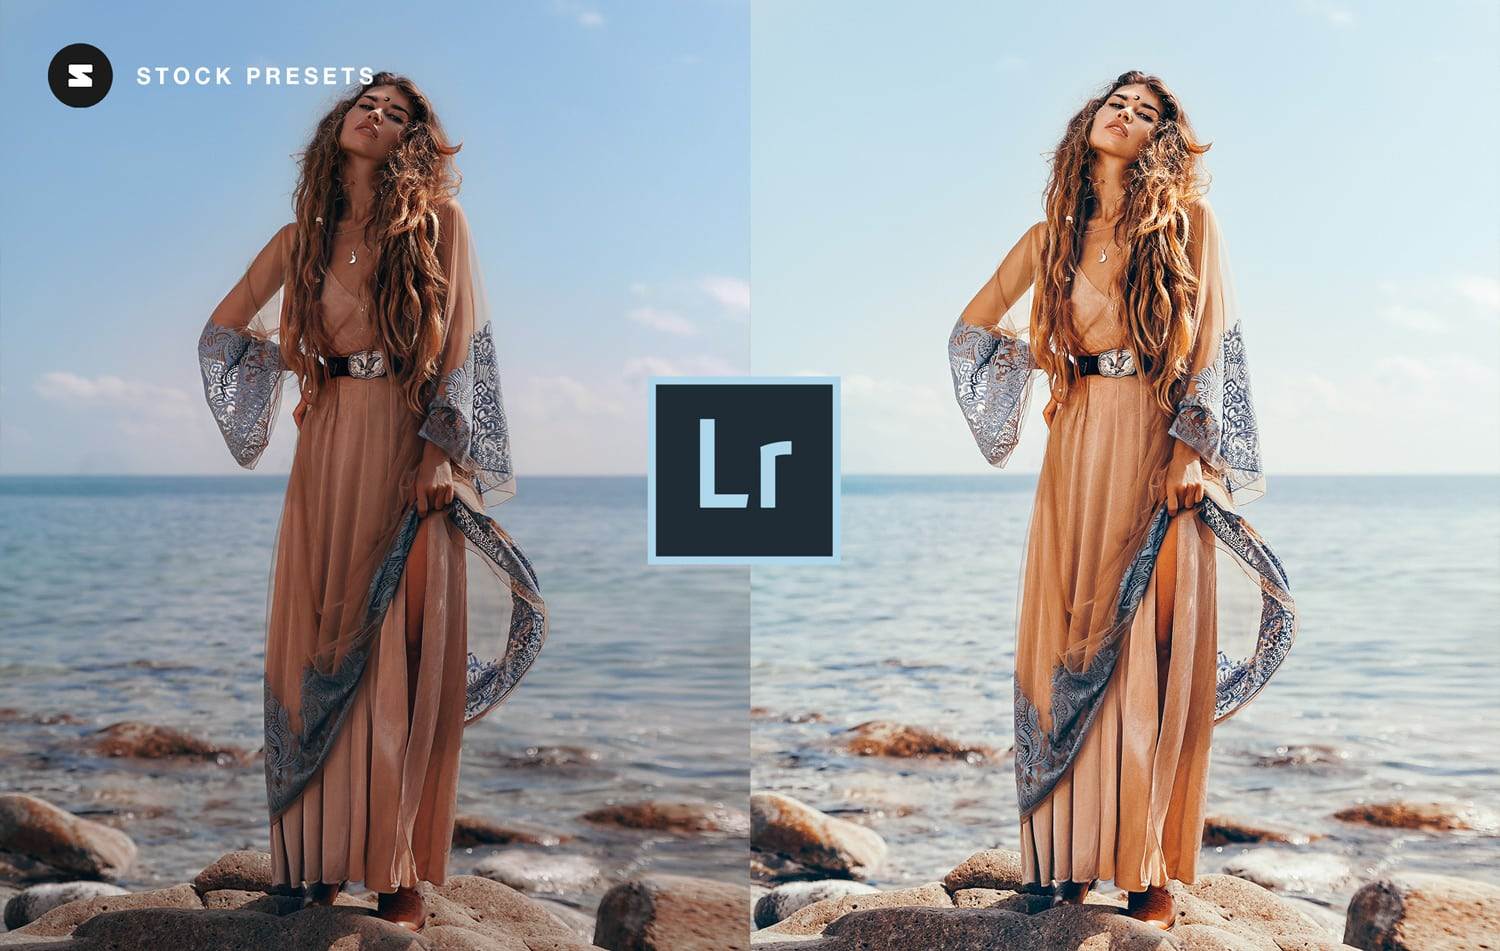 Free-Lightroom-Preset-Portrait-Stock-Before-and-After-Stockpresets